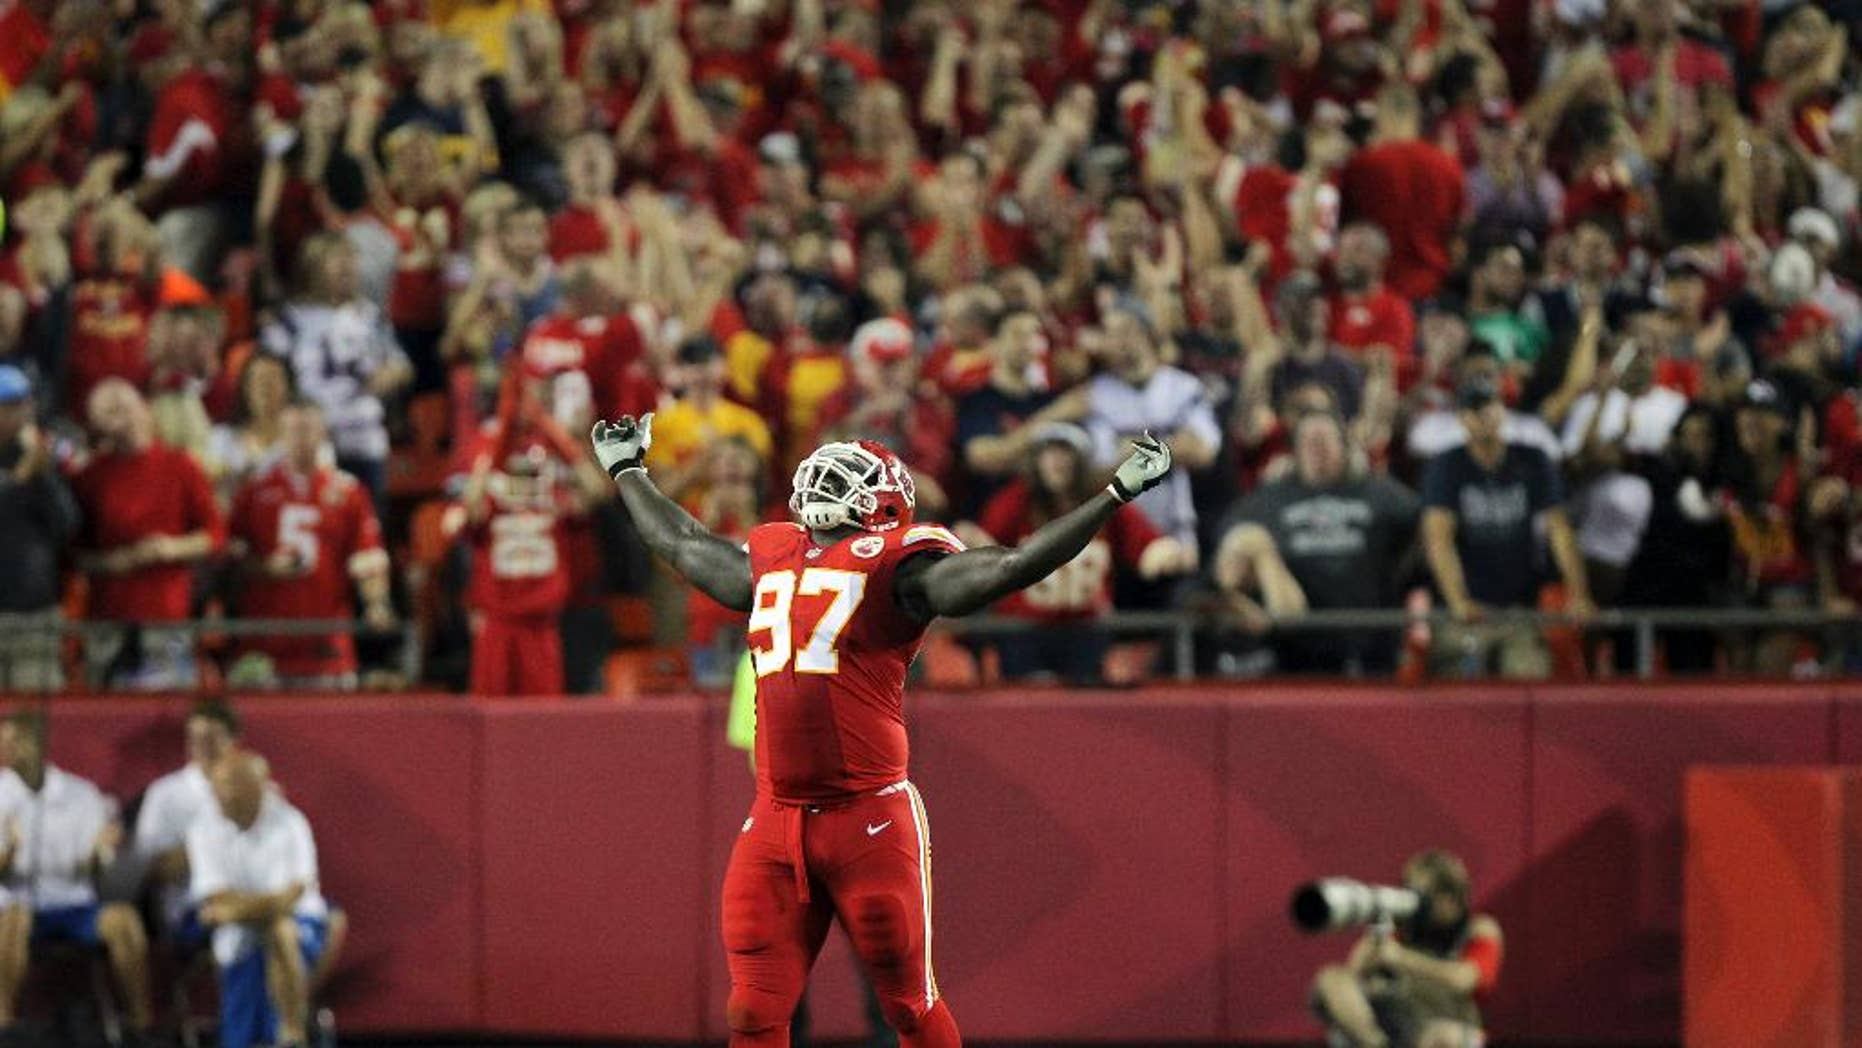 Kansas City Chiefs defensive end Allen Bailey celebrates after teammate Sean Smith intercepted a pass and ran it back 34-yards during the third quarter of an NFL football game against the New England Patriots, Monday, Sept. 29, 2014, in Kansas City, Mo. (AP Photo/Ed Zurga)